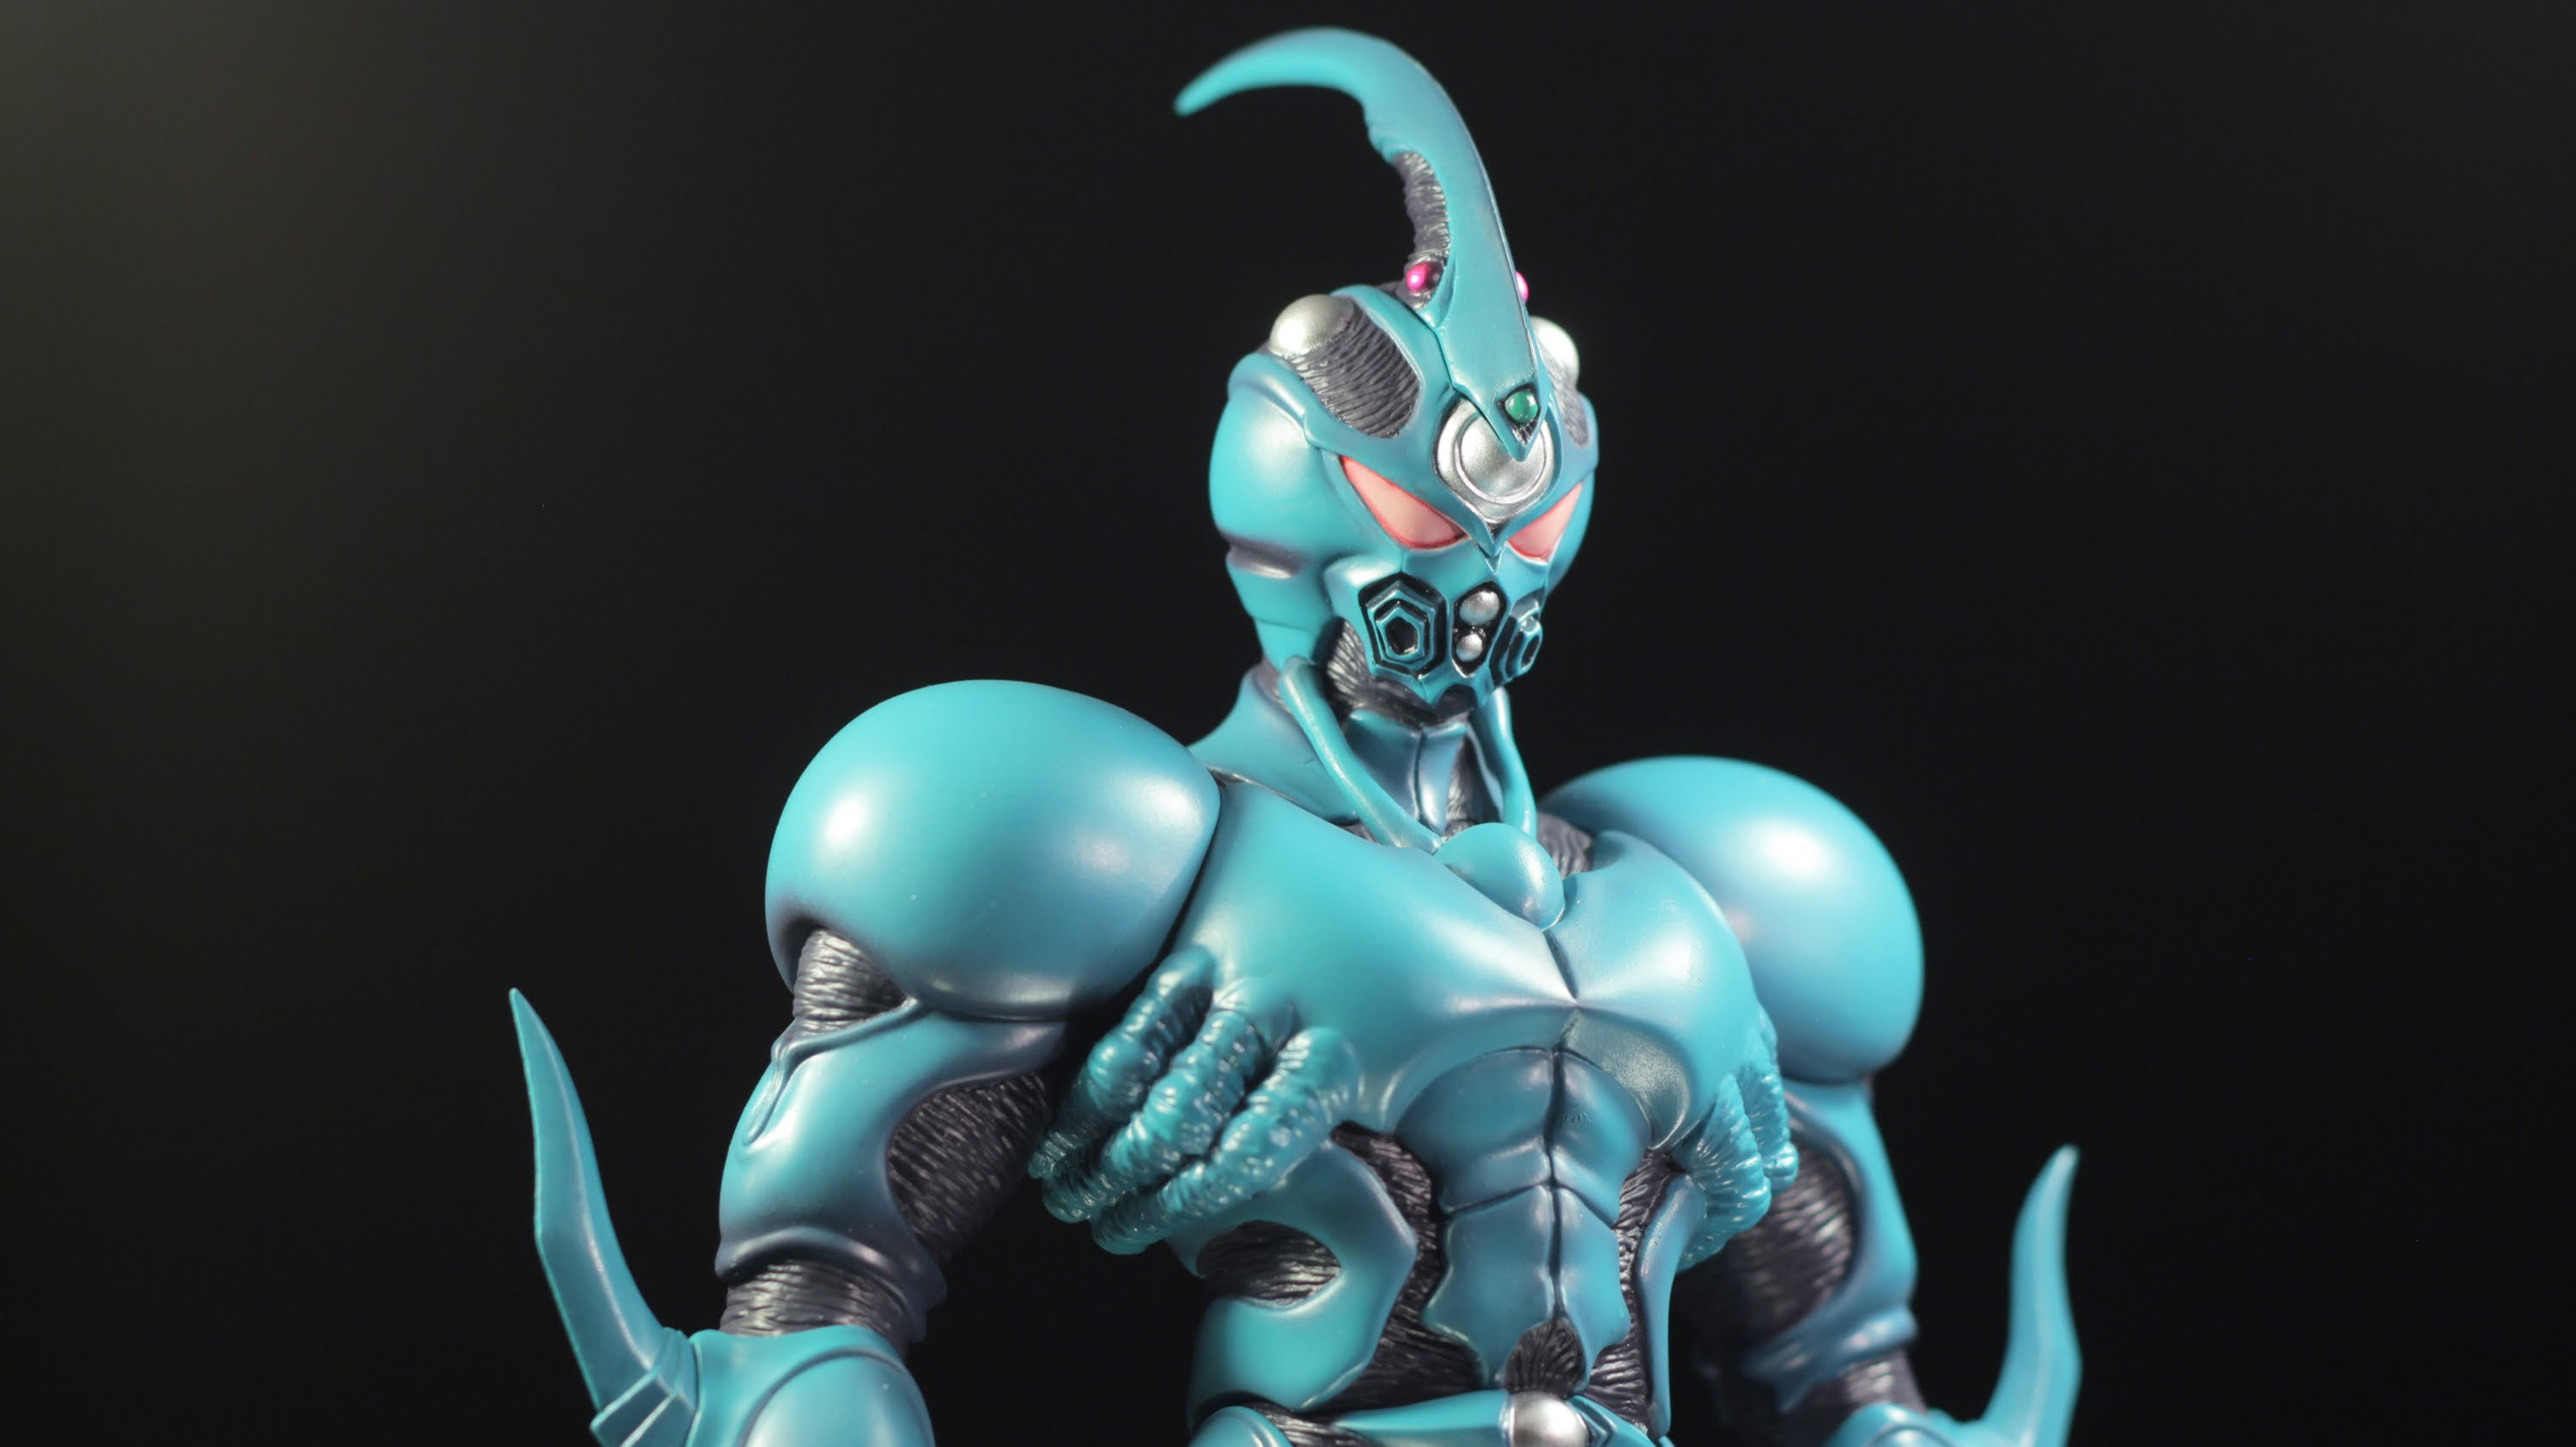 Guyver The Bioboosted Armor HD wallpapers, Desktop wallpaper - most viewed